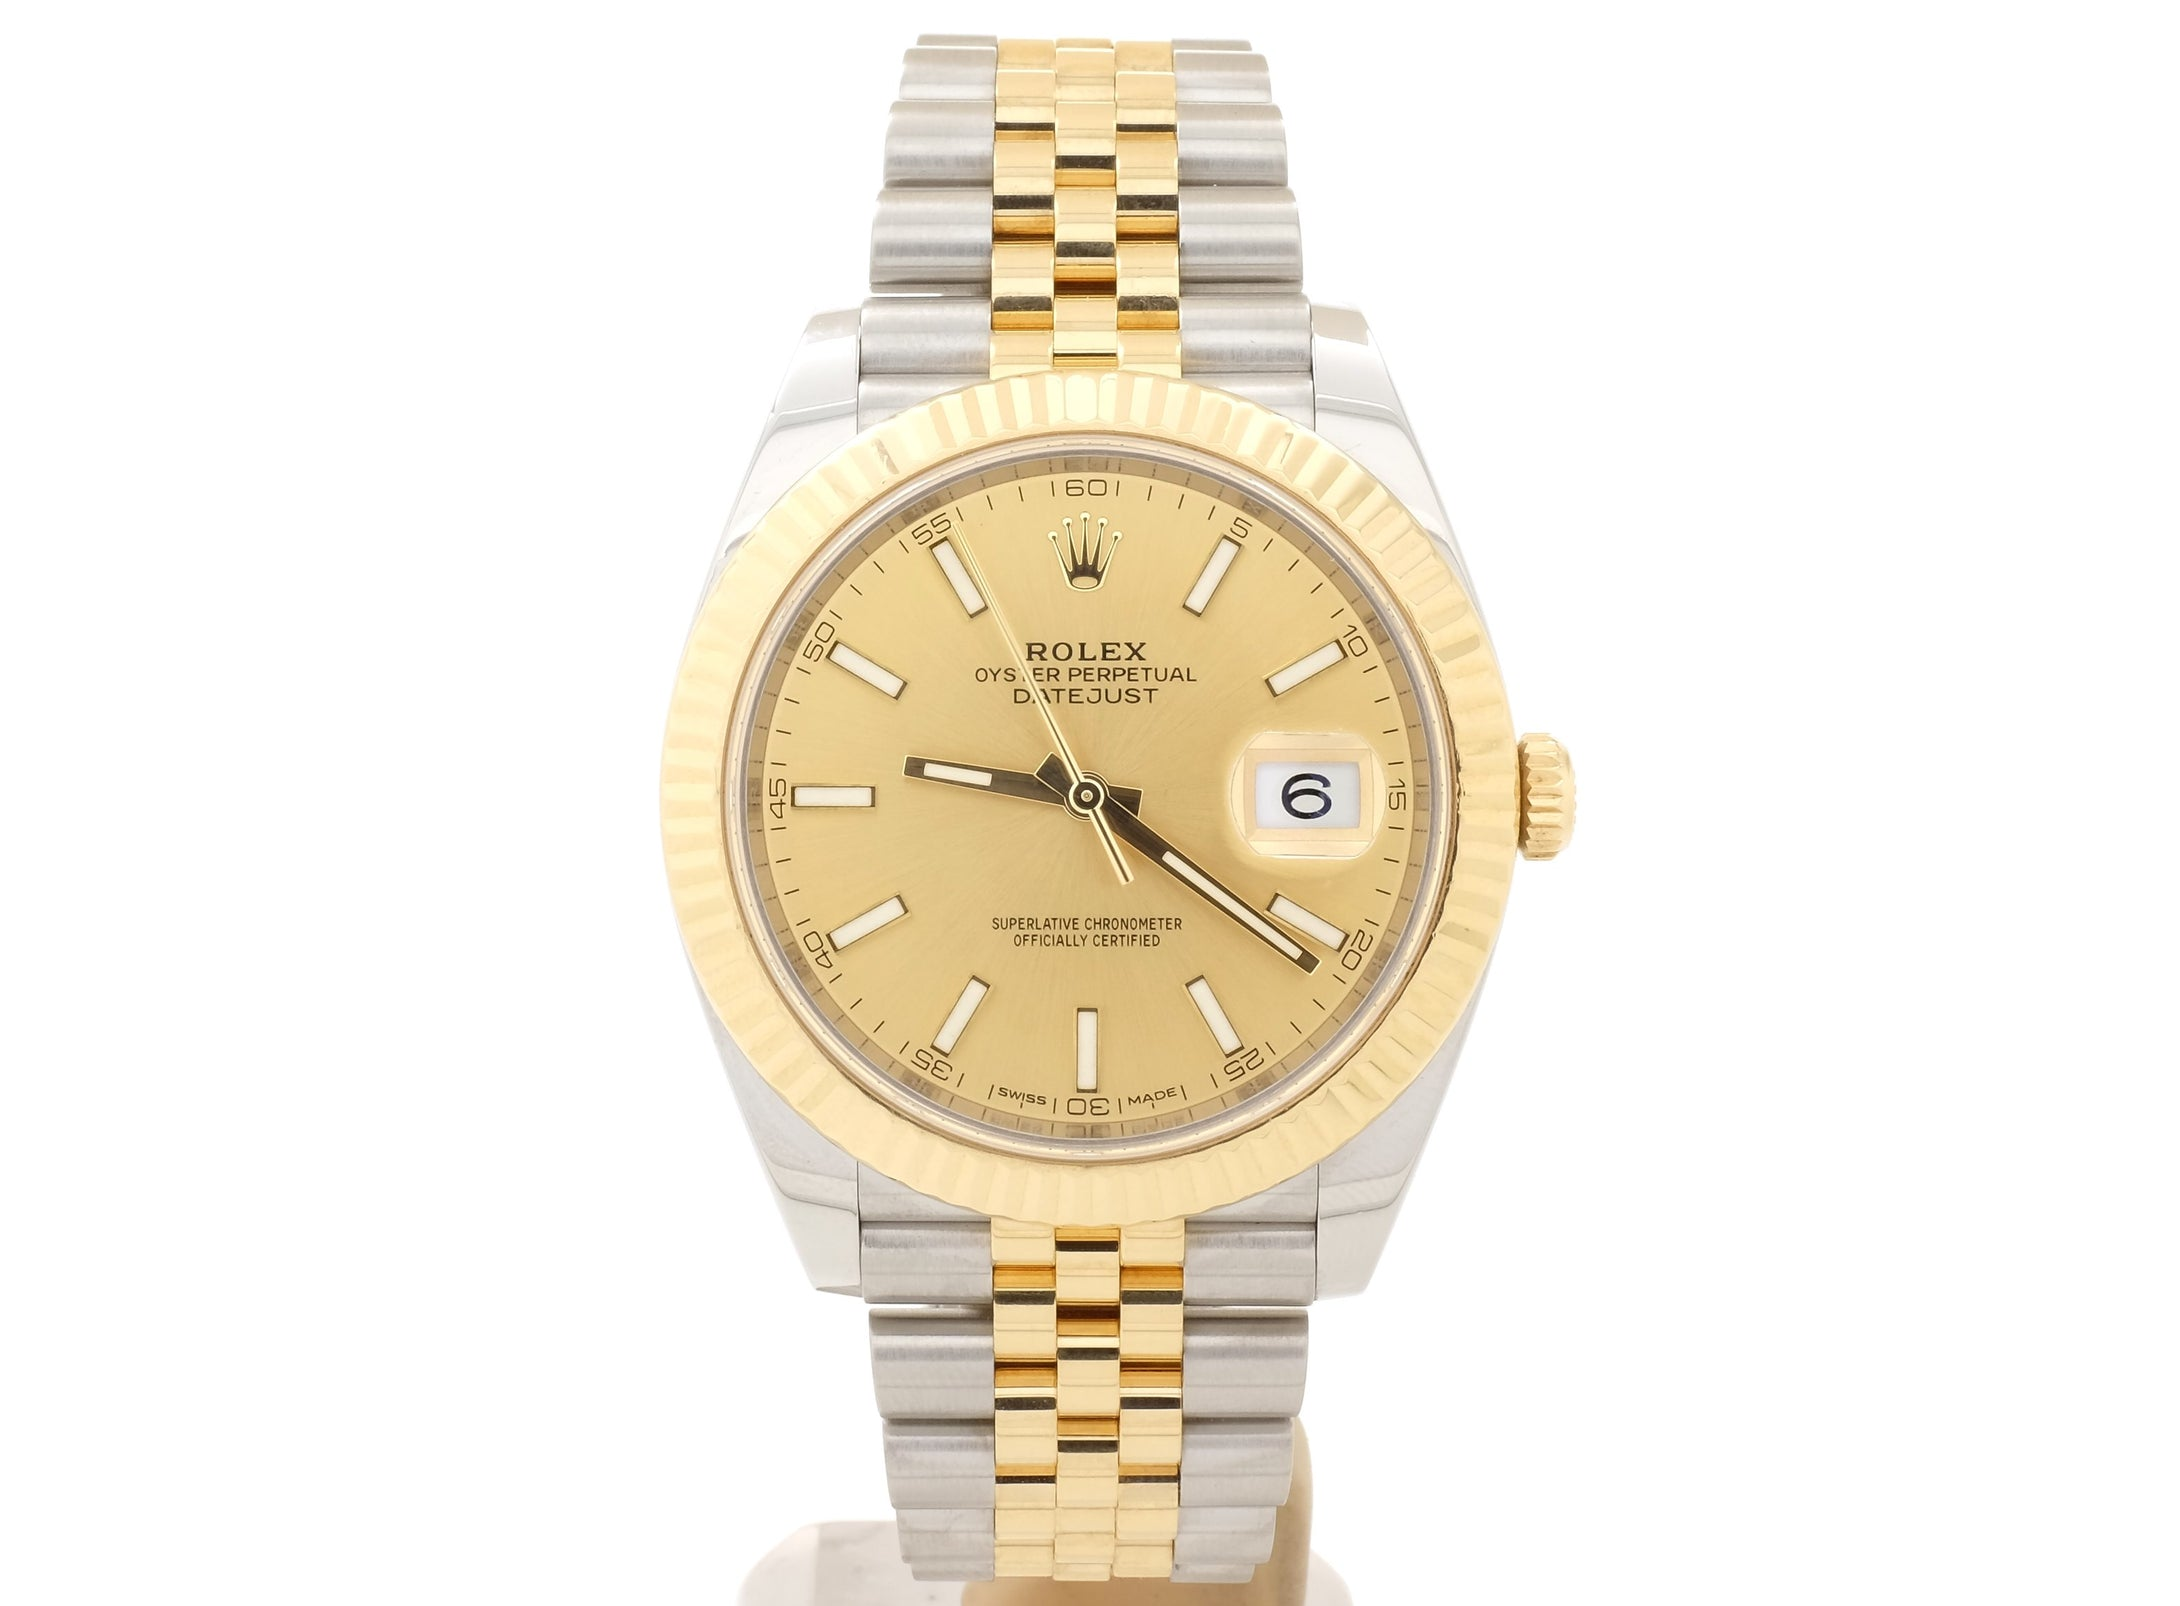 Fantastic 2016 Rolex DATEJUST 41 126333 with Champagne Dial — Still in Warranty